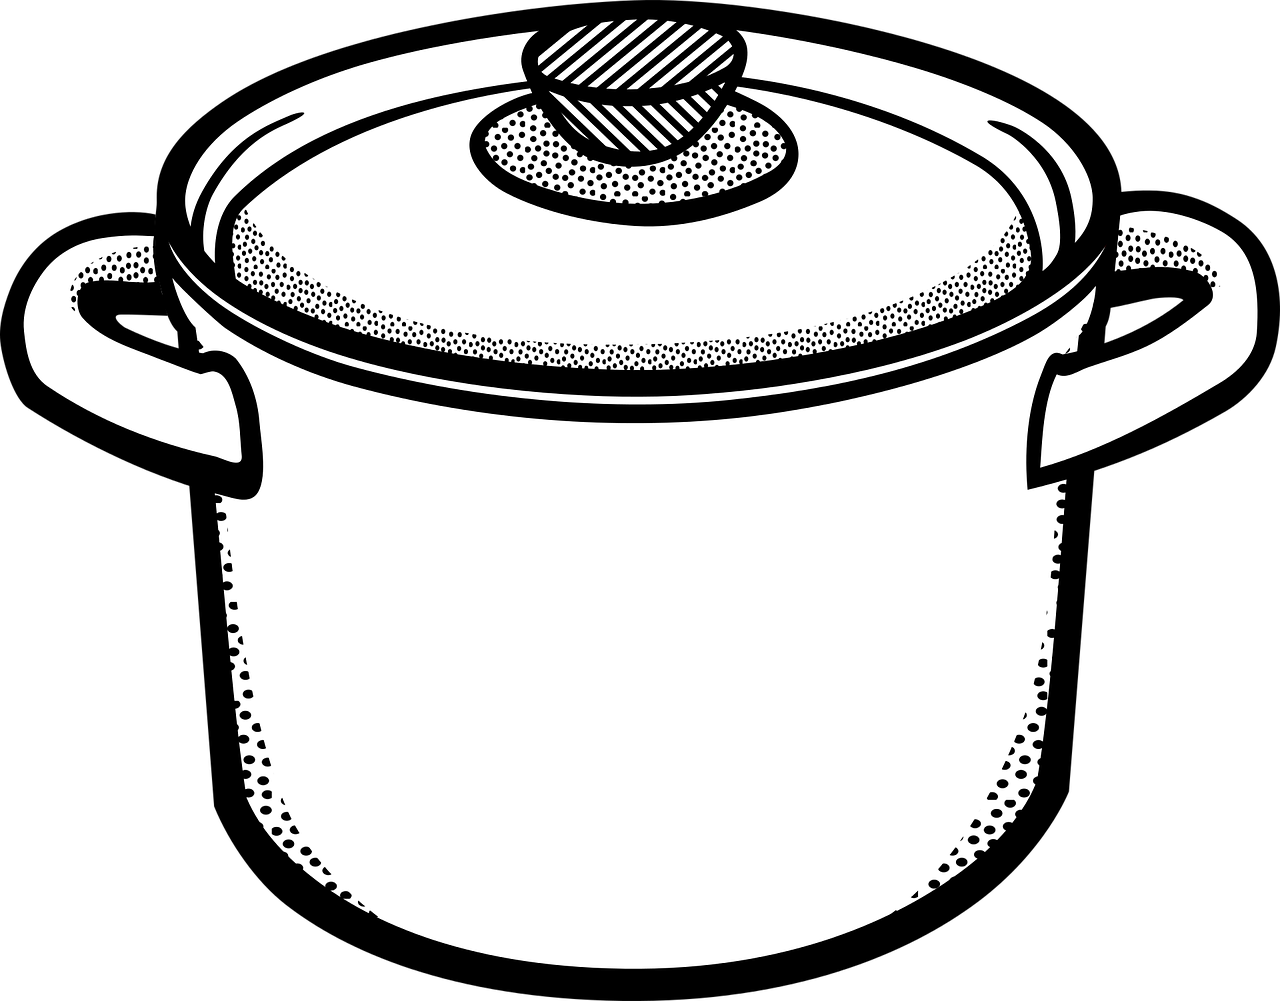 Free dawnload picture utensils. Kitchen clipart black and white